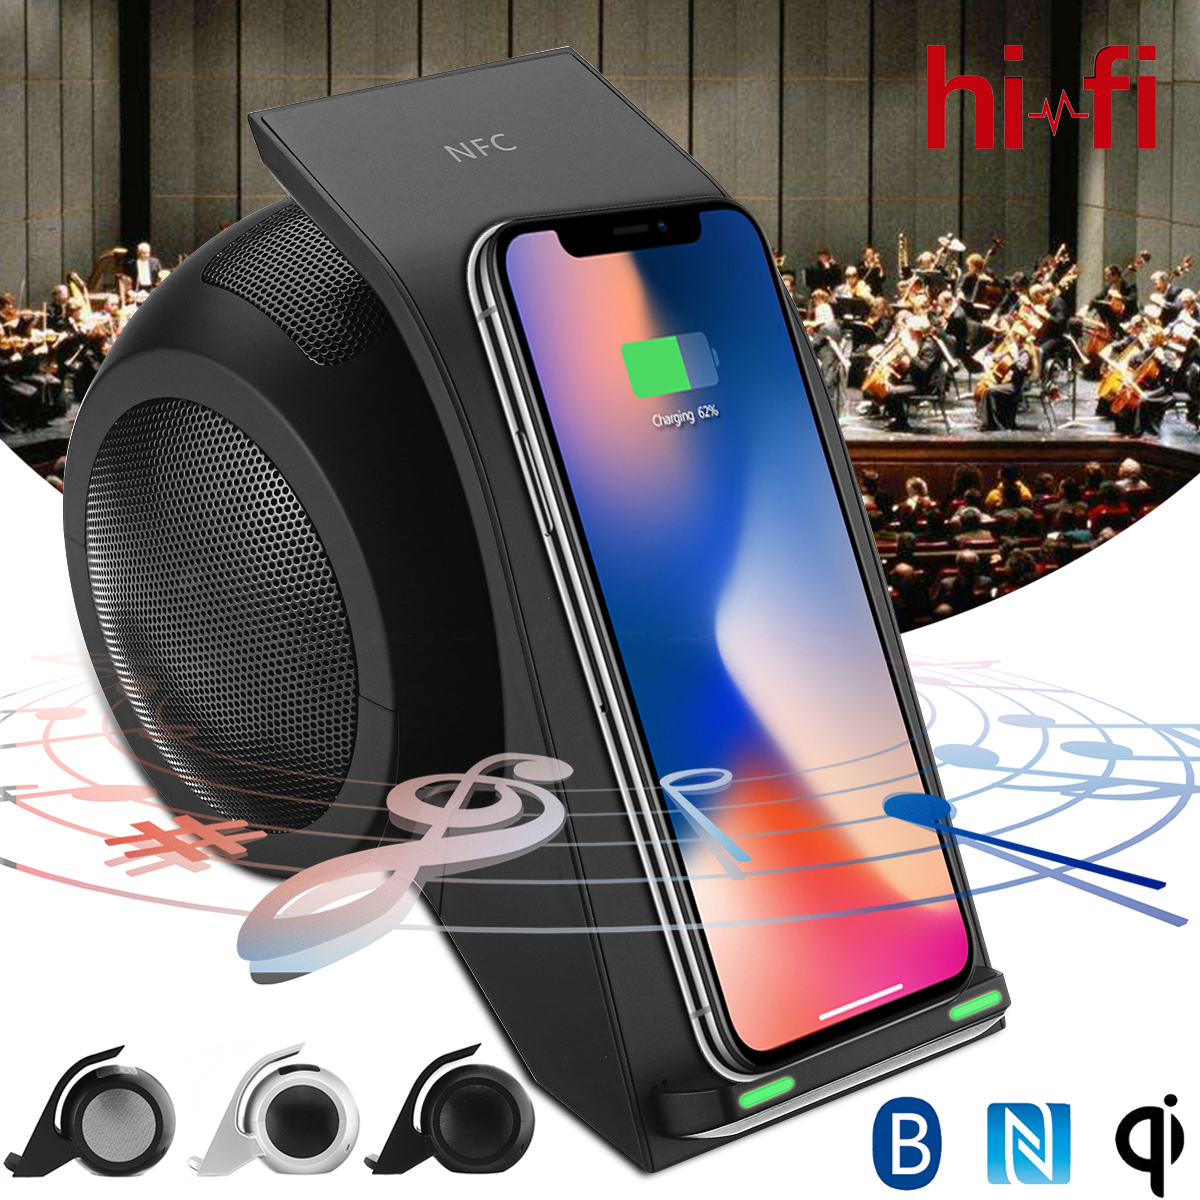 3 in 1 Qi Wireless Fast Charger Pad Bluetooth Speaker NFC Hifi Music Player Charging for iphone XS MAX XR X 8 8P for Samsung nillkin cozy mc1 2 in 1 qi wireless charger hifi bluetooth speaker